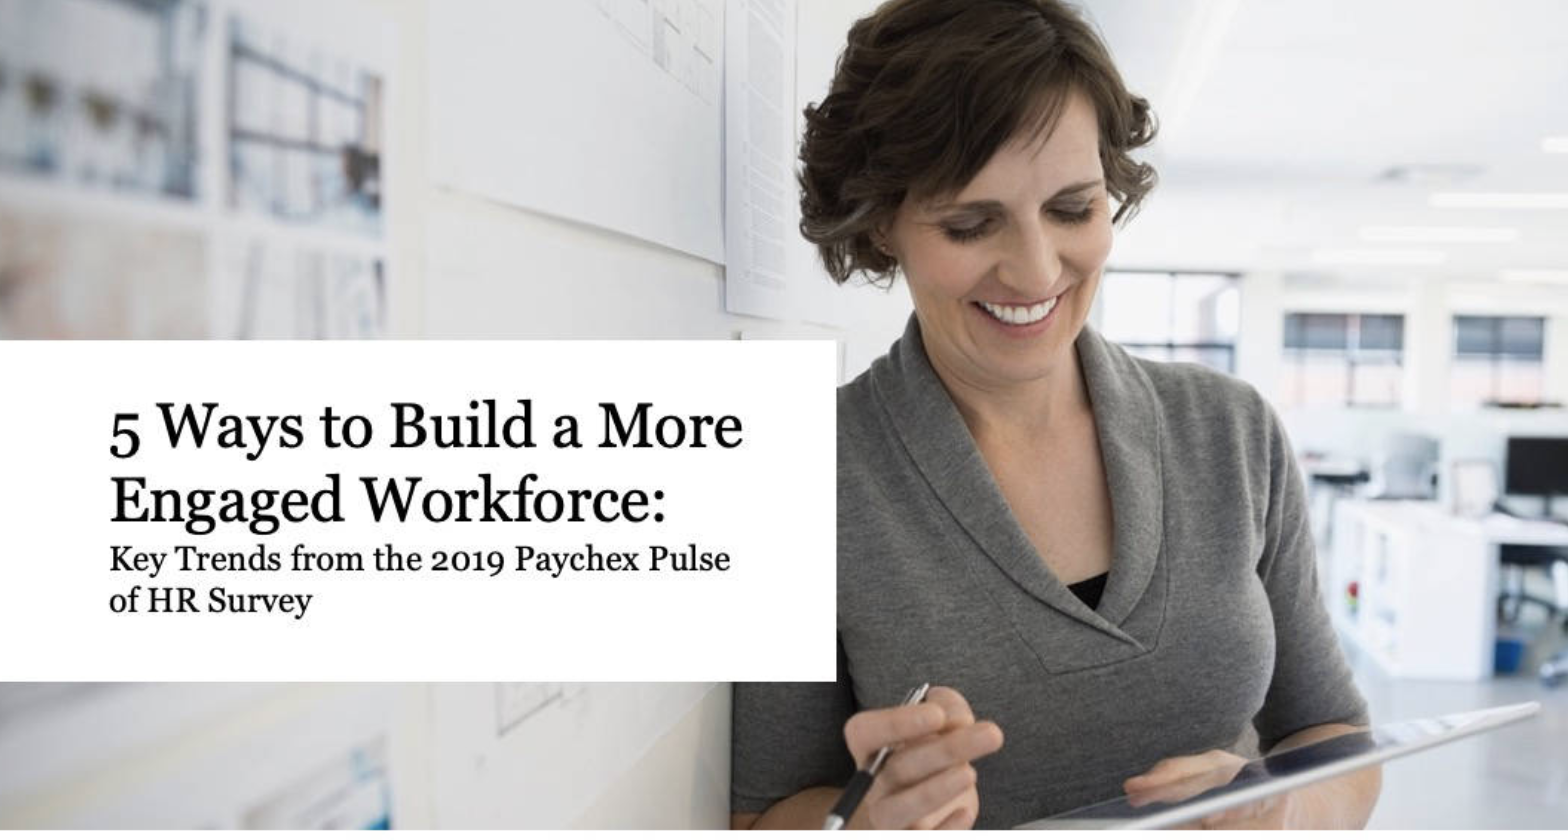 5 Ways to Build a More Engaged Workforce